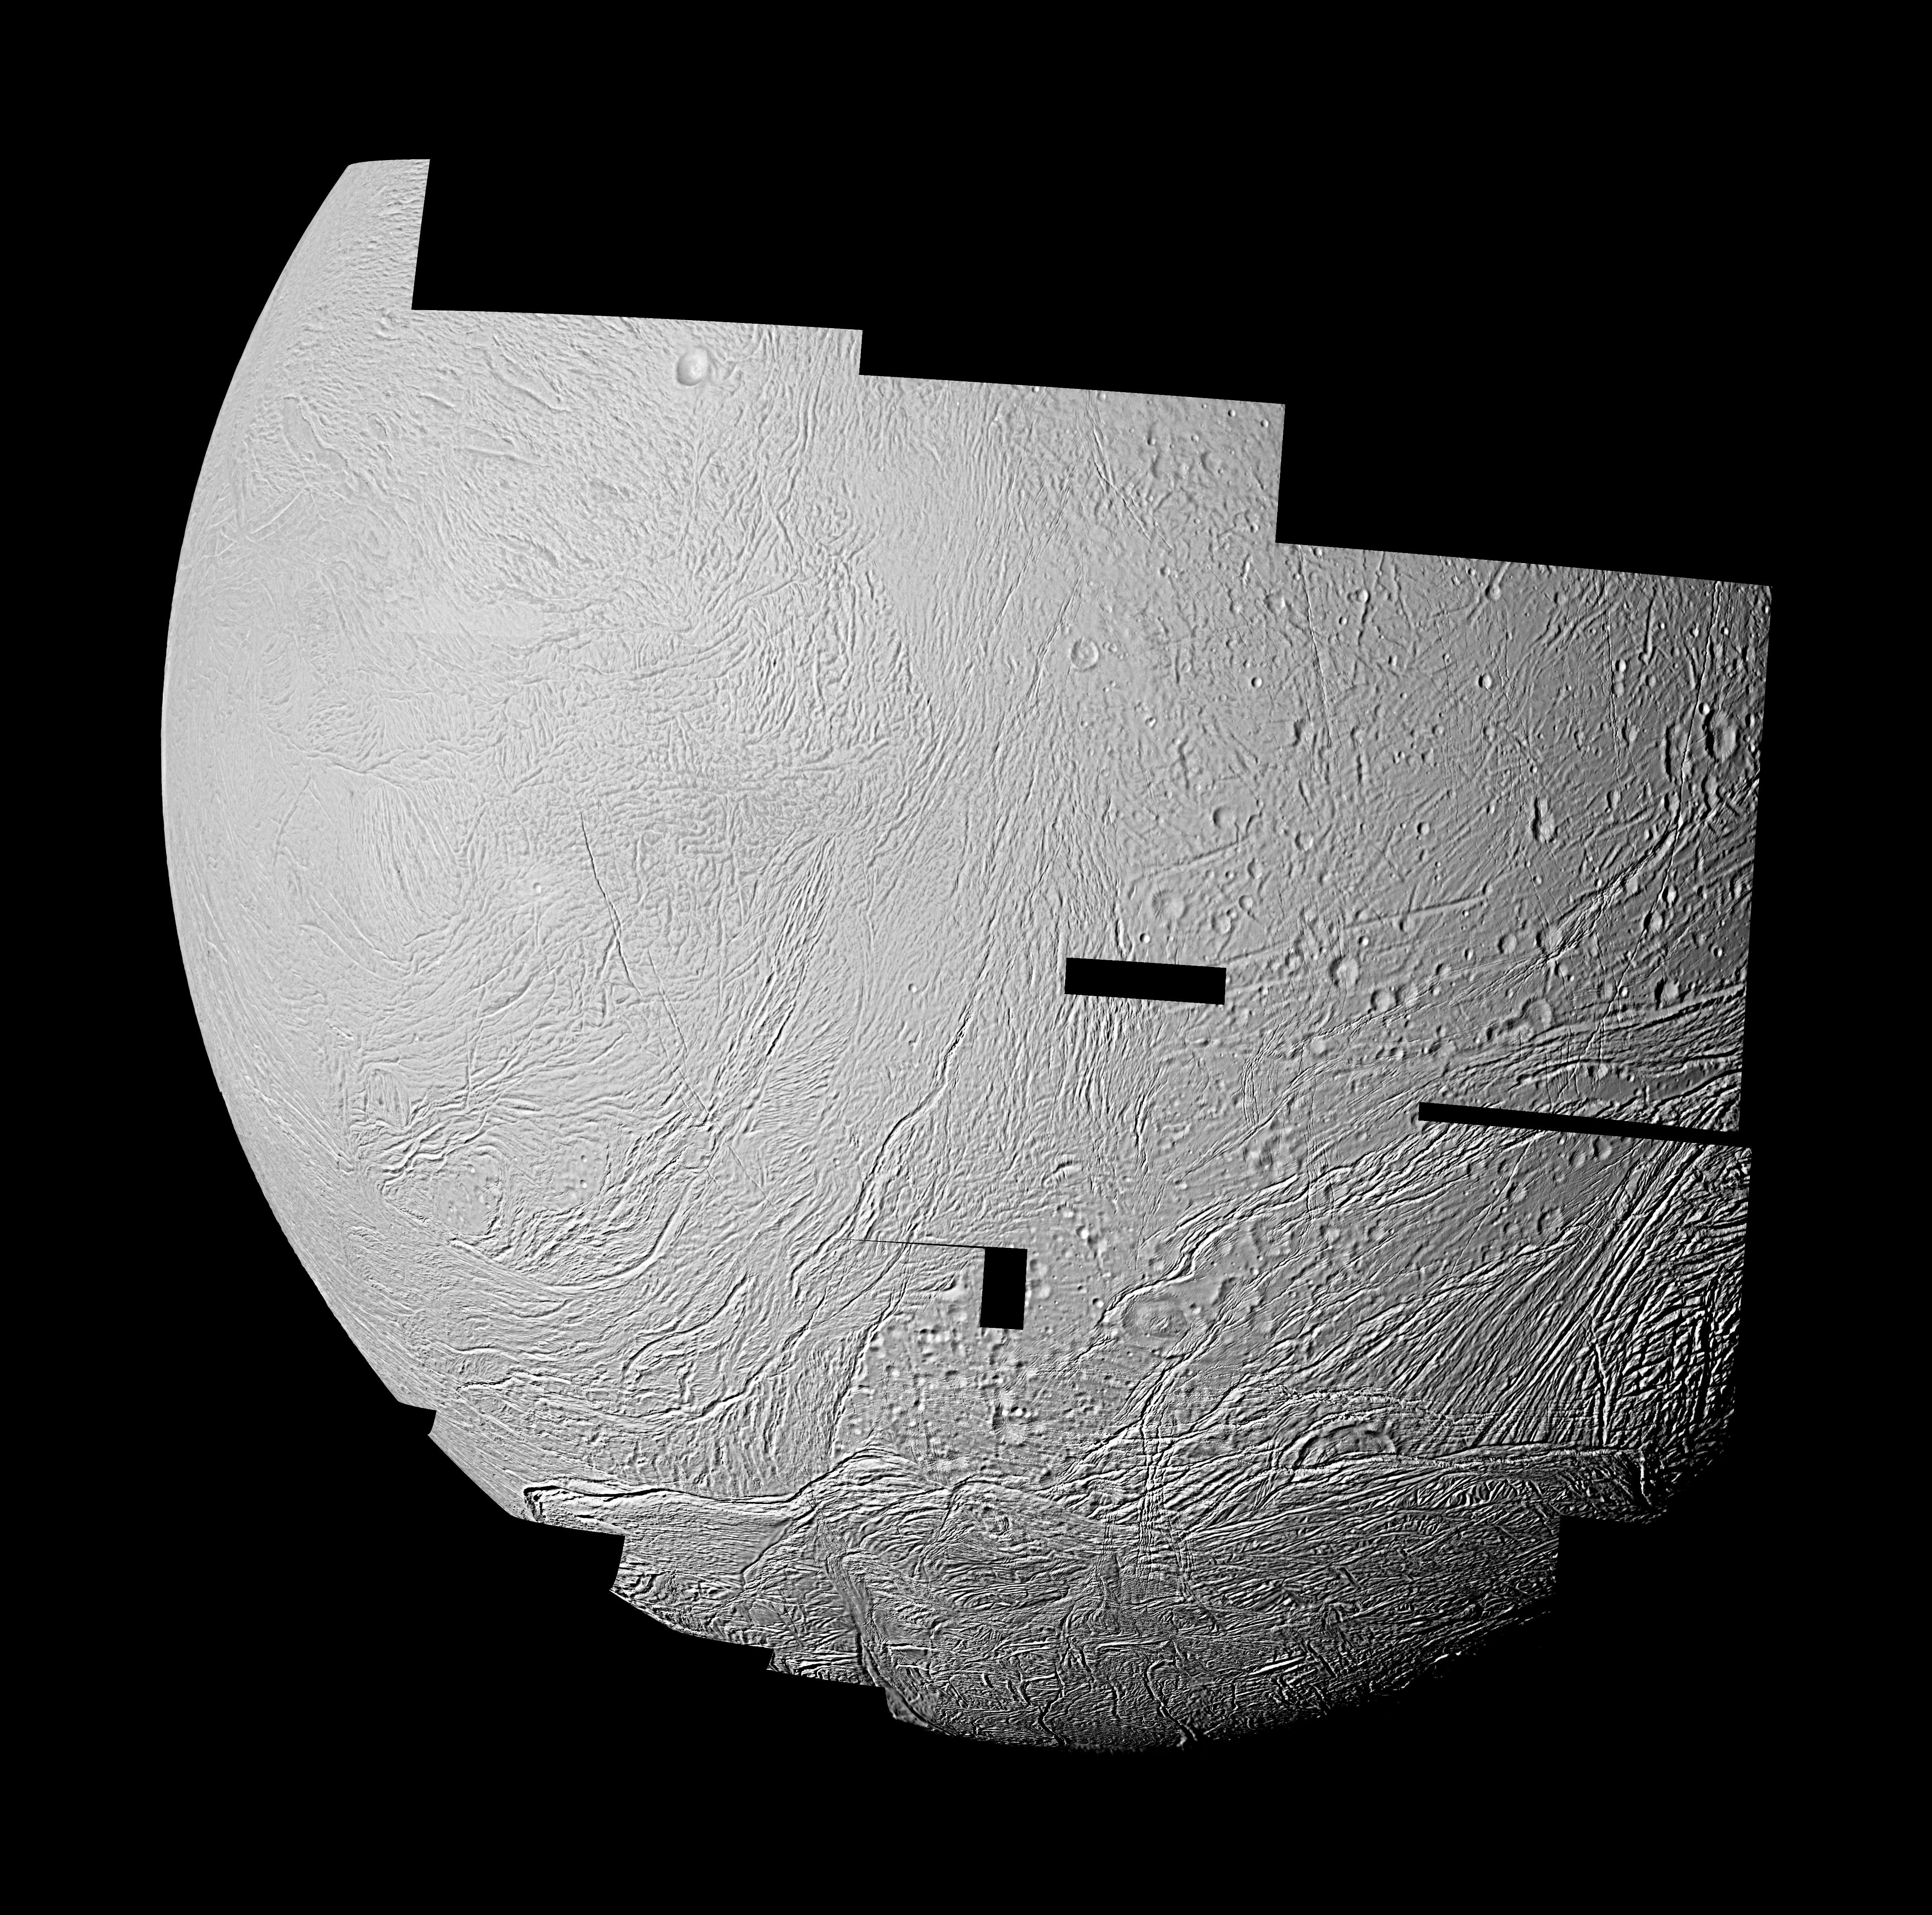 This mosaic features the highest resolution data yet captured by NASA's Cassini spacecraft of the leading, or western, hemisphere of Saturn's moon Enceladus.